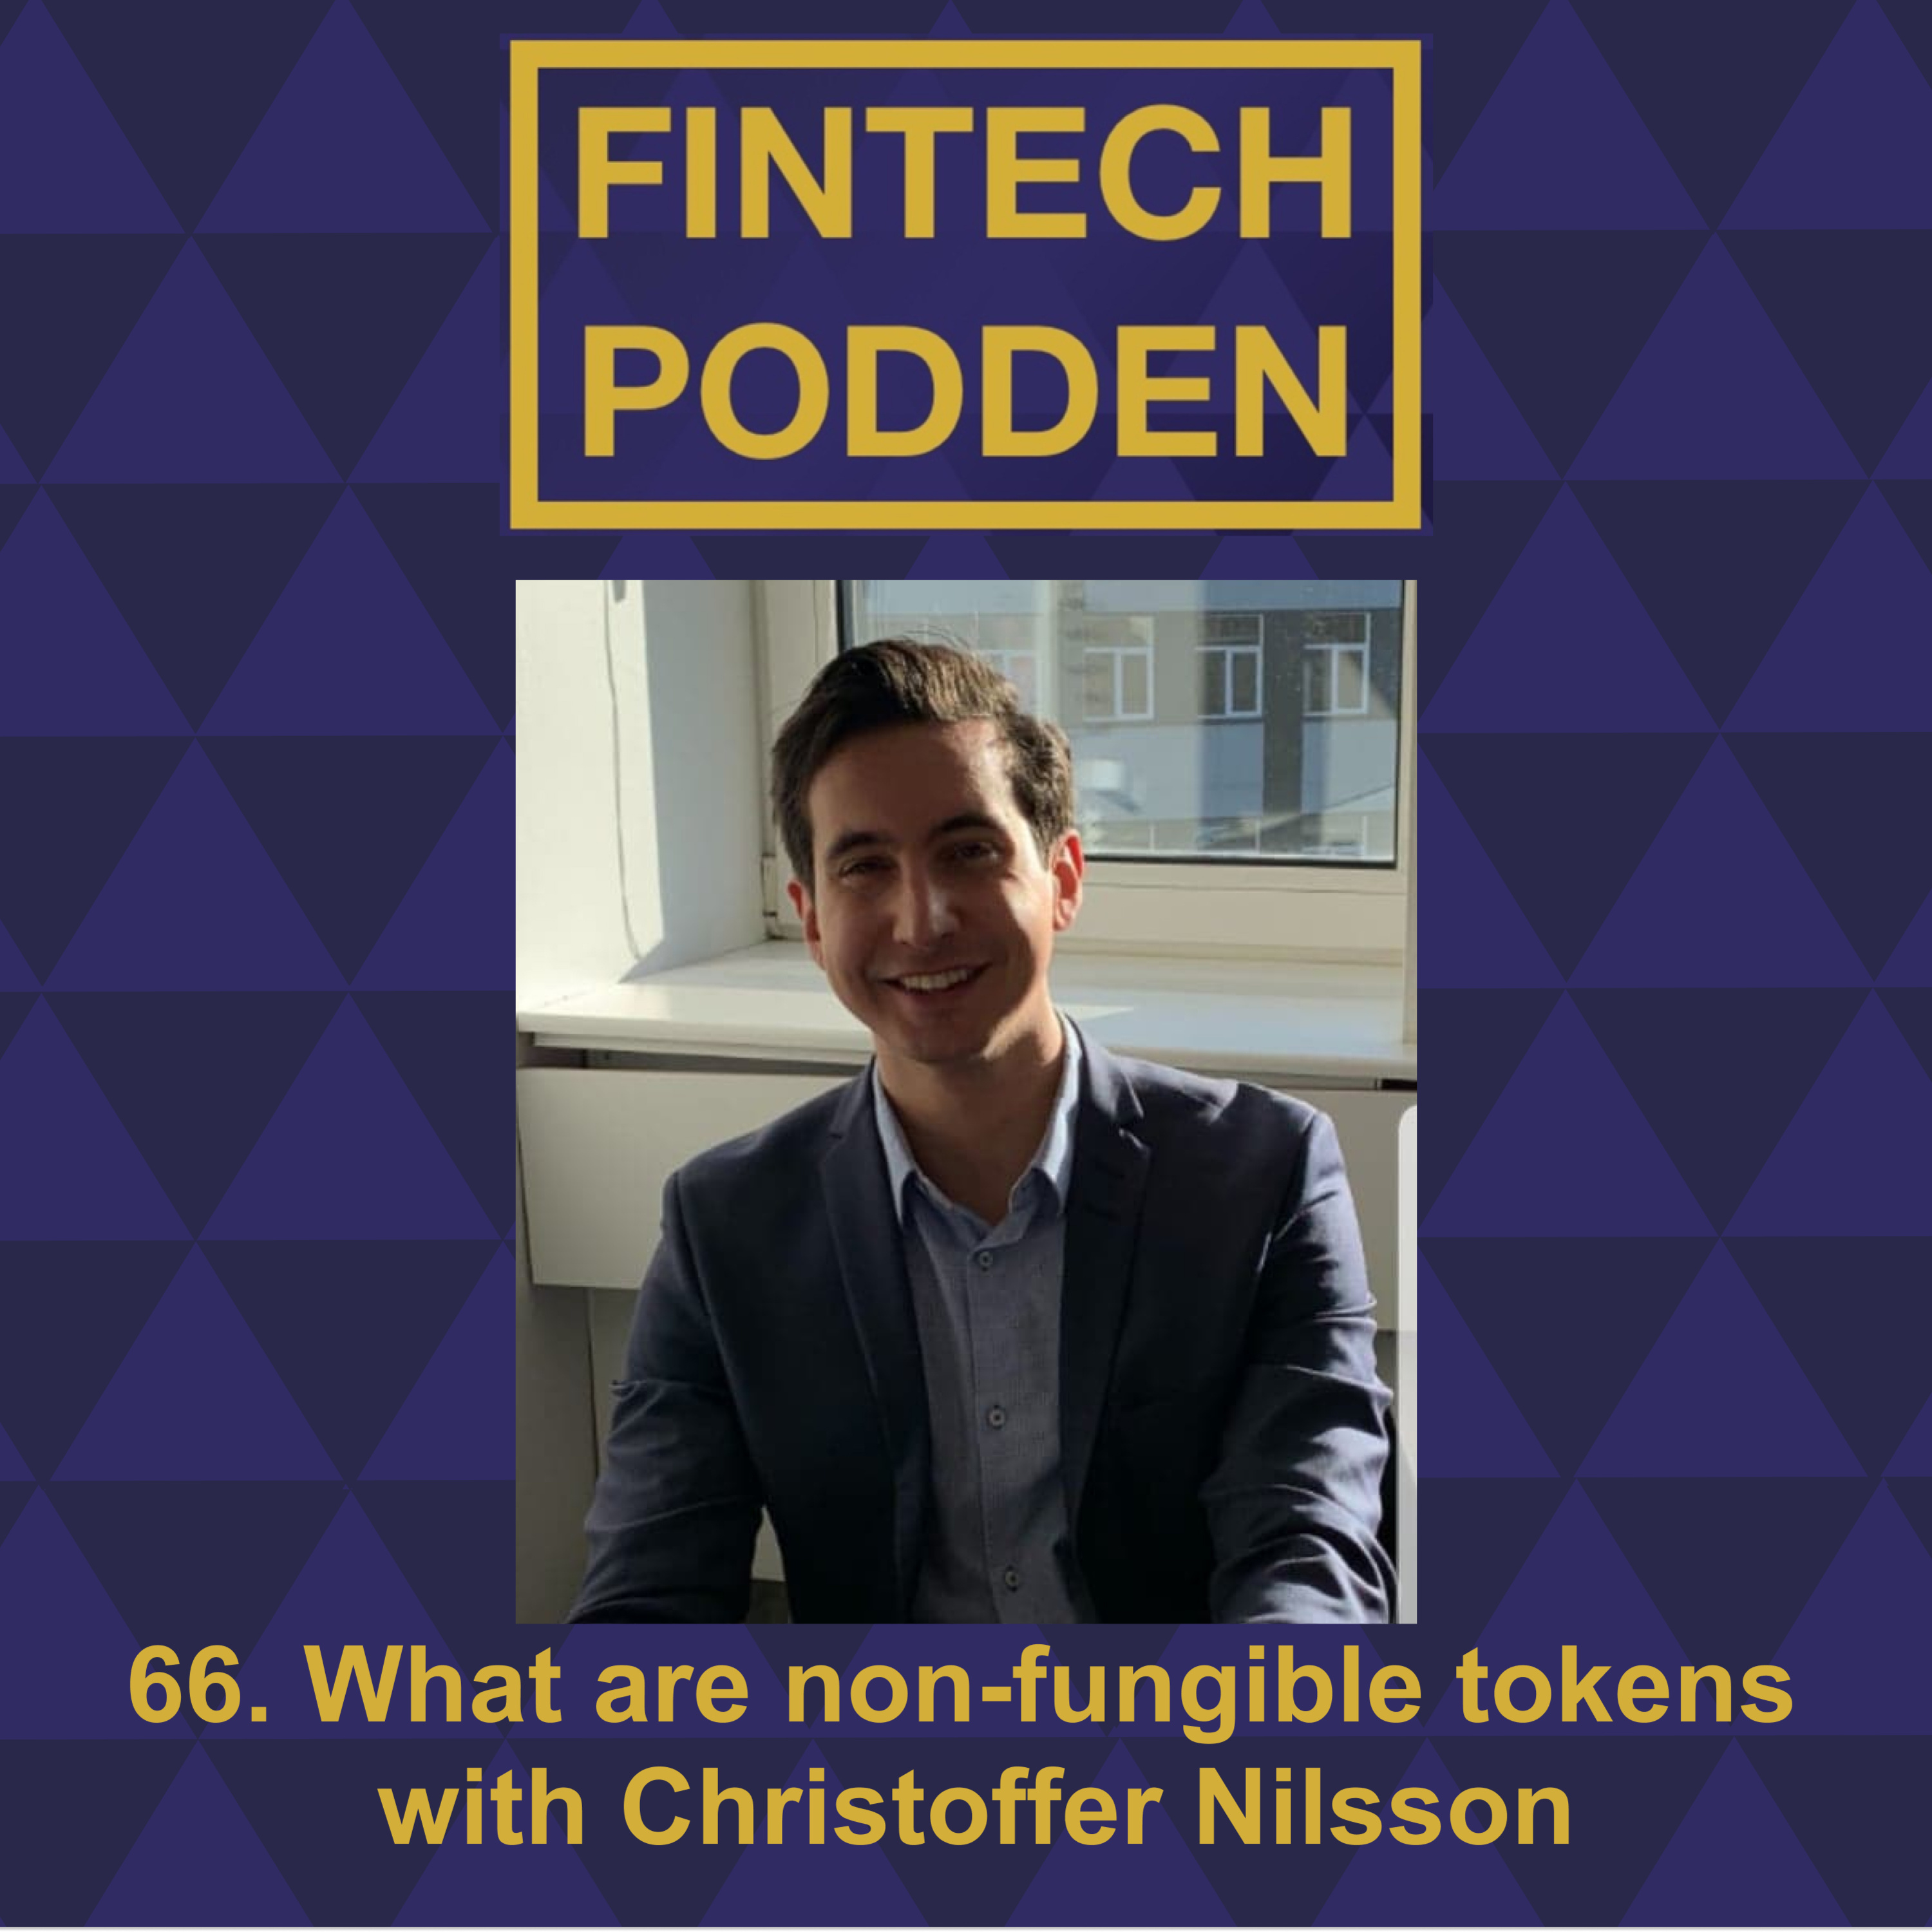 66. What are non-fungible tokens with Christoffer Nilsson